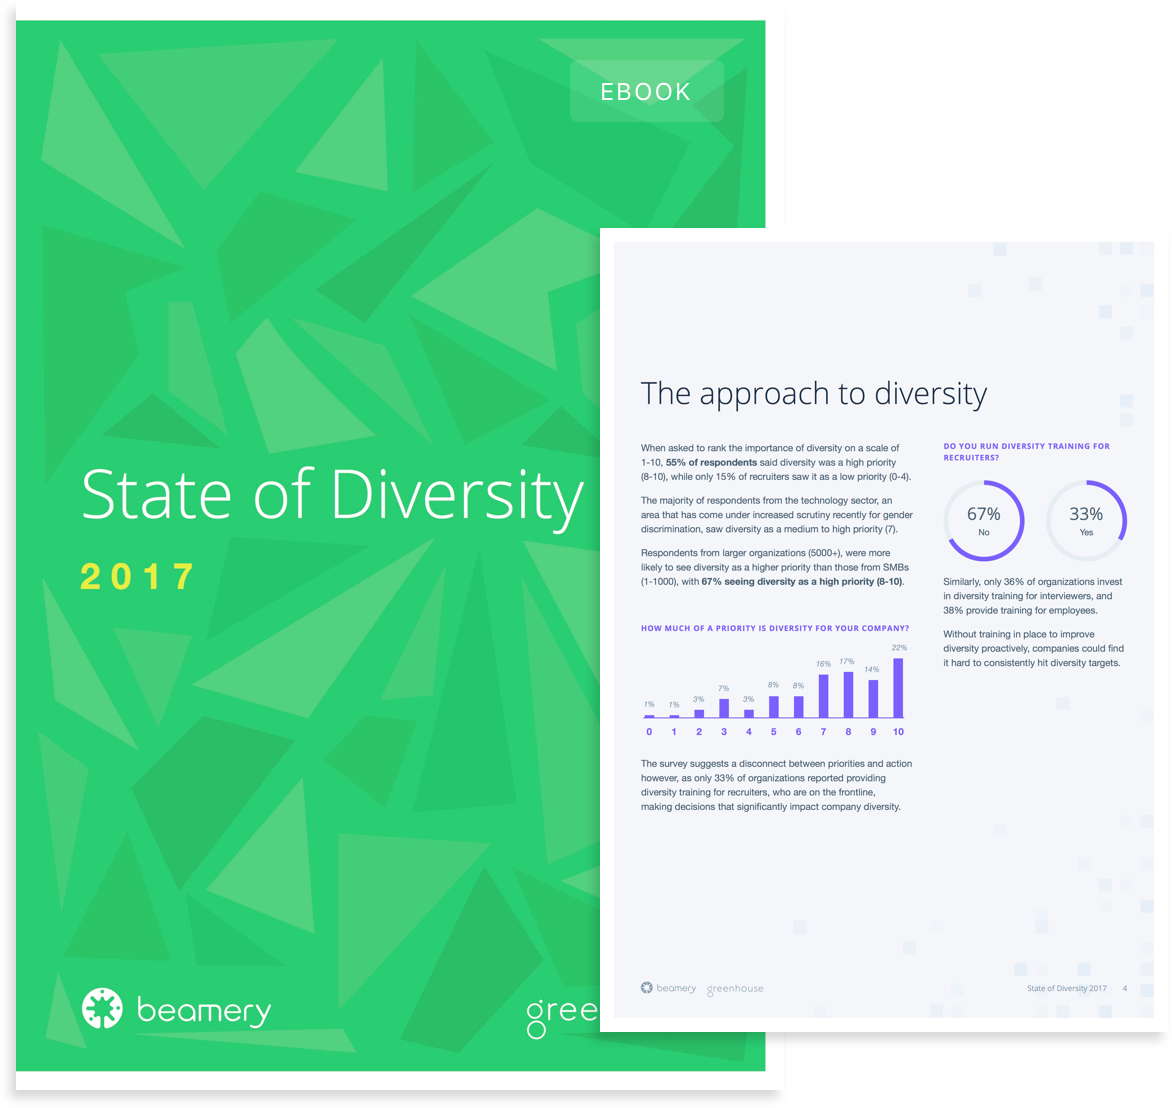 The State of Diversity 2017 image